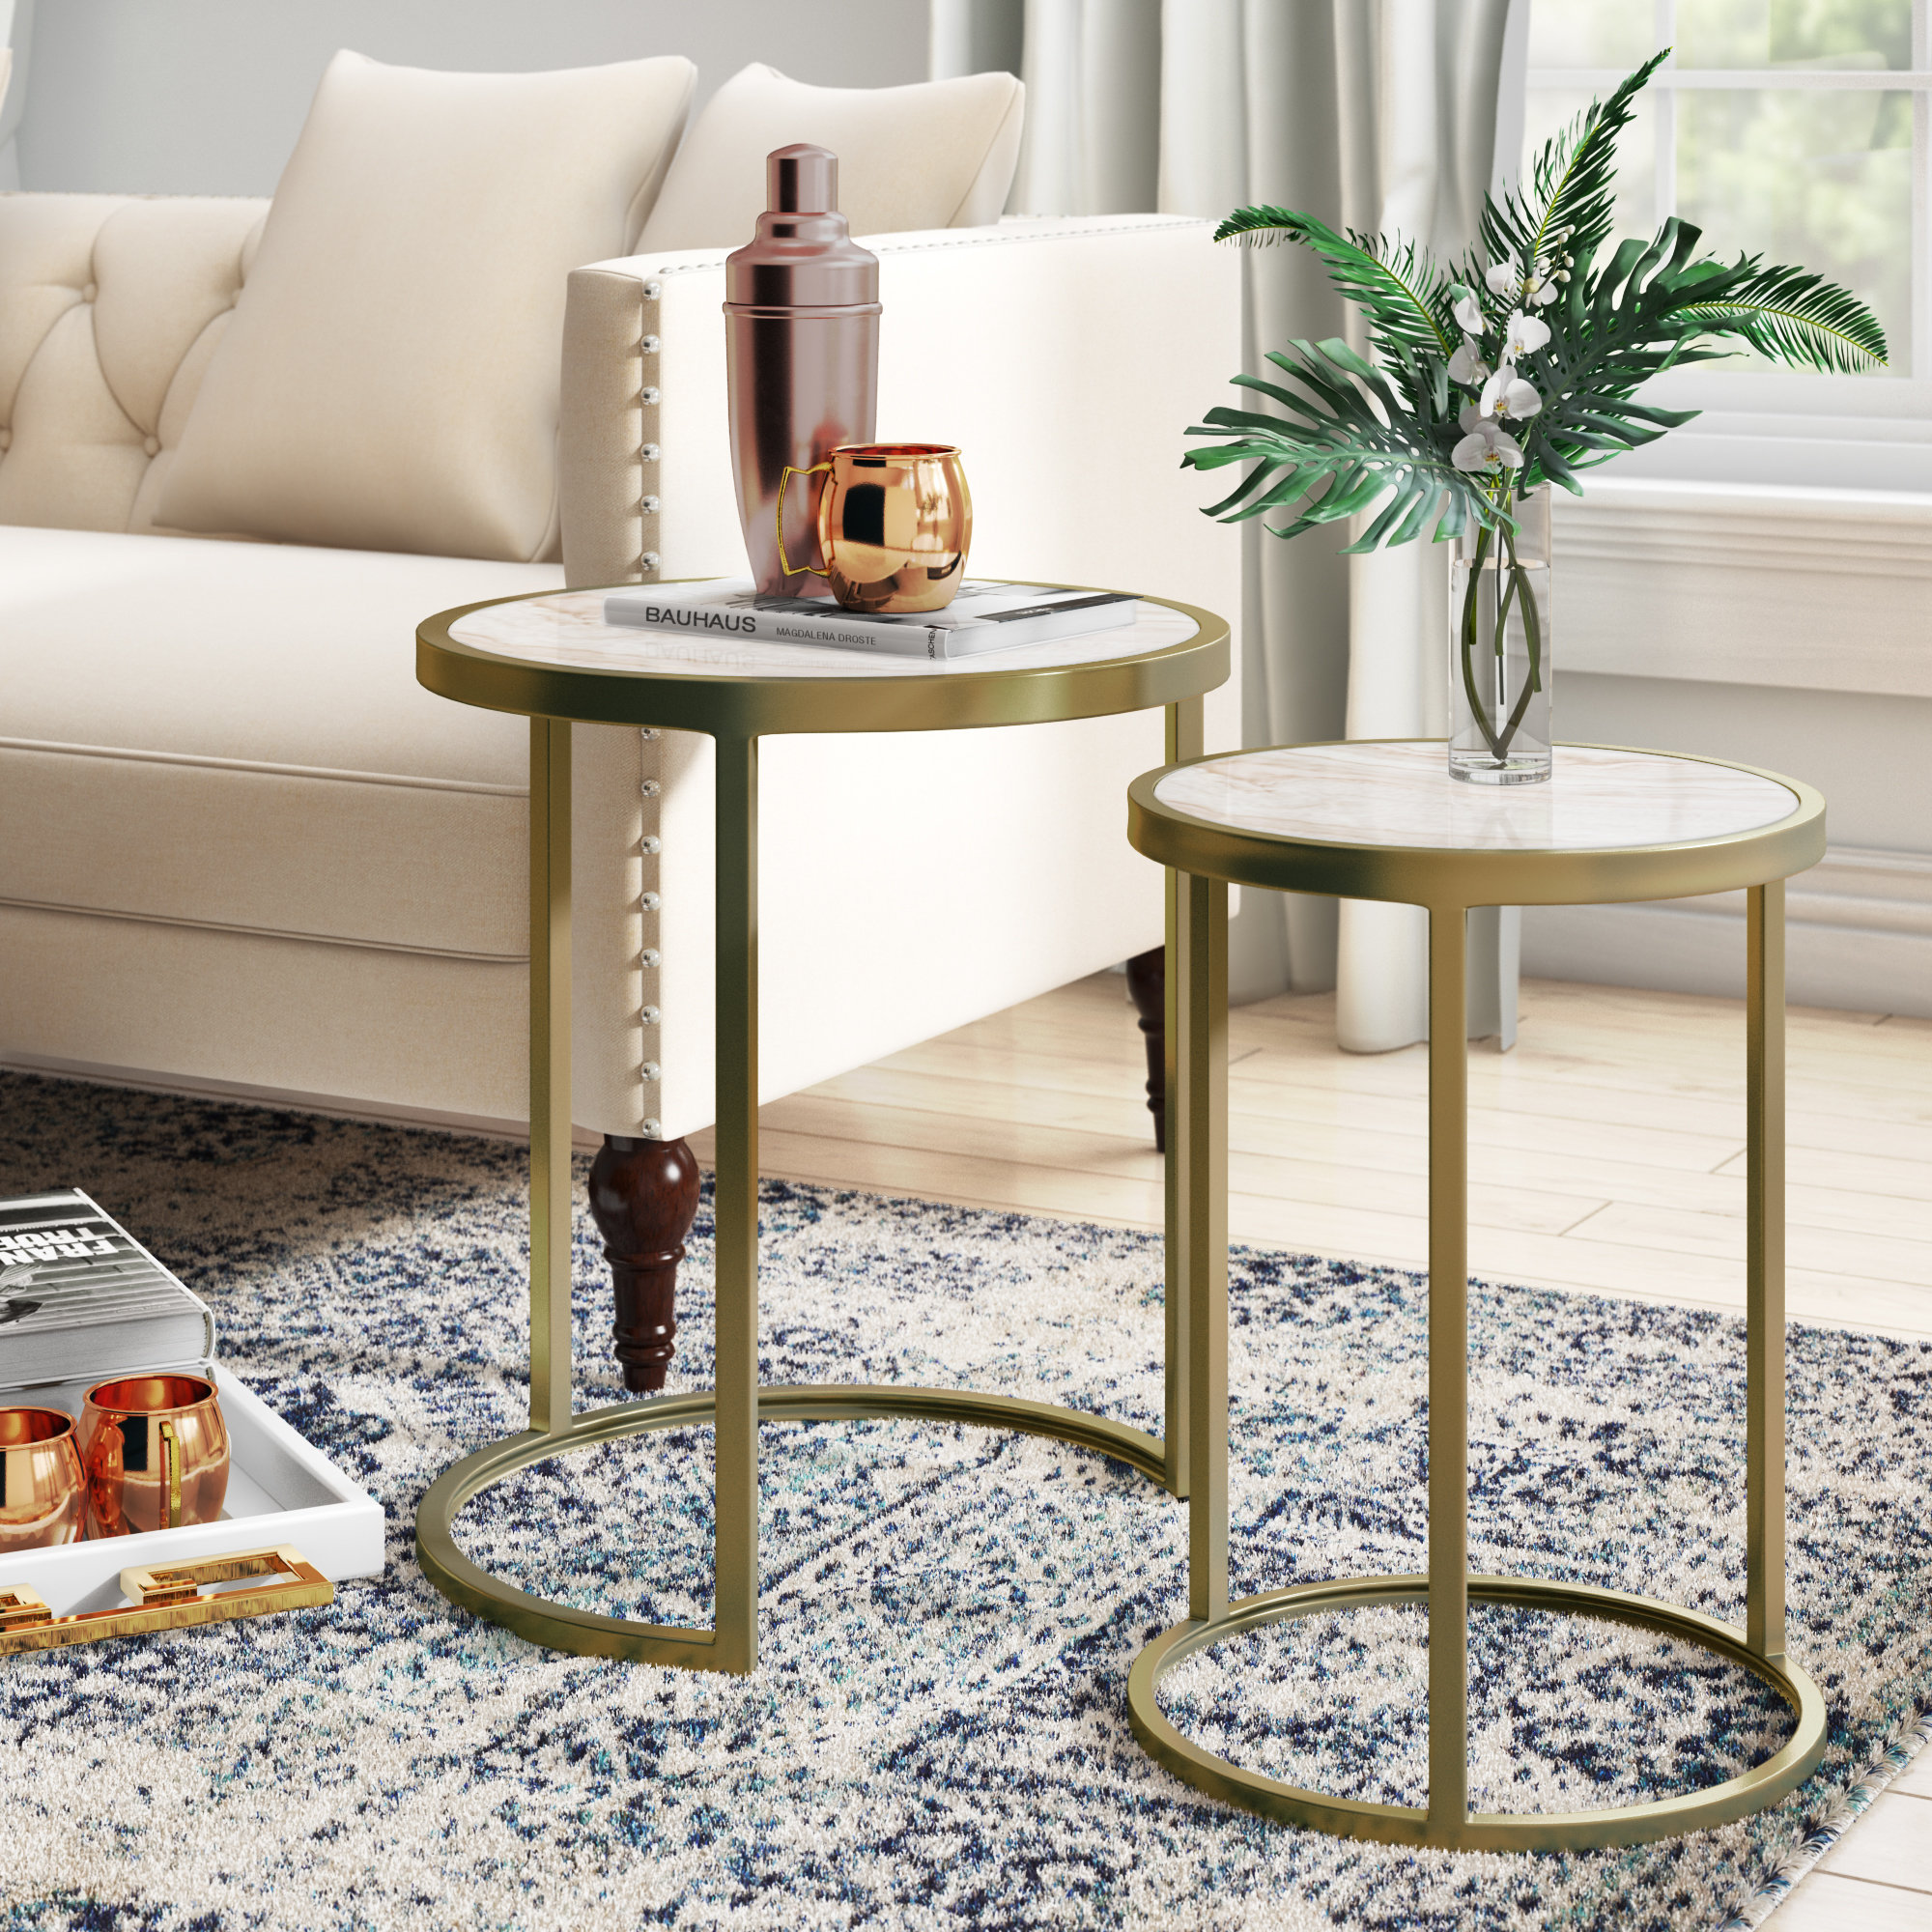 selzer piece nesting tables reviews don mirrored accent table clear cherry counter height dining set round marble top teak garden coffee ethan allen nightstand used small brass